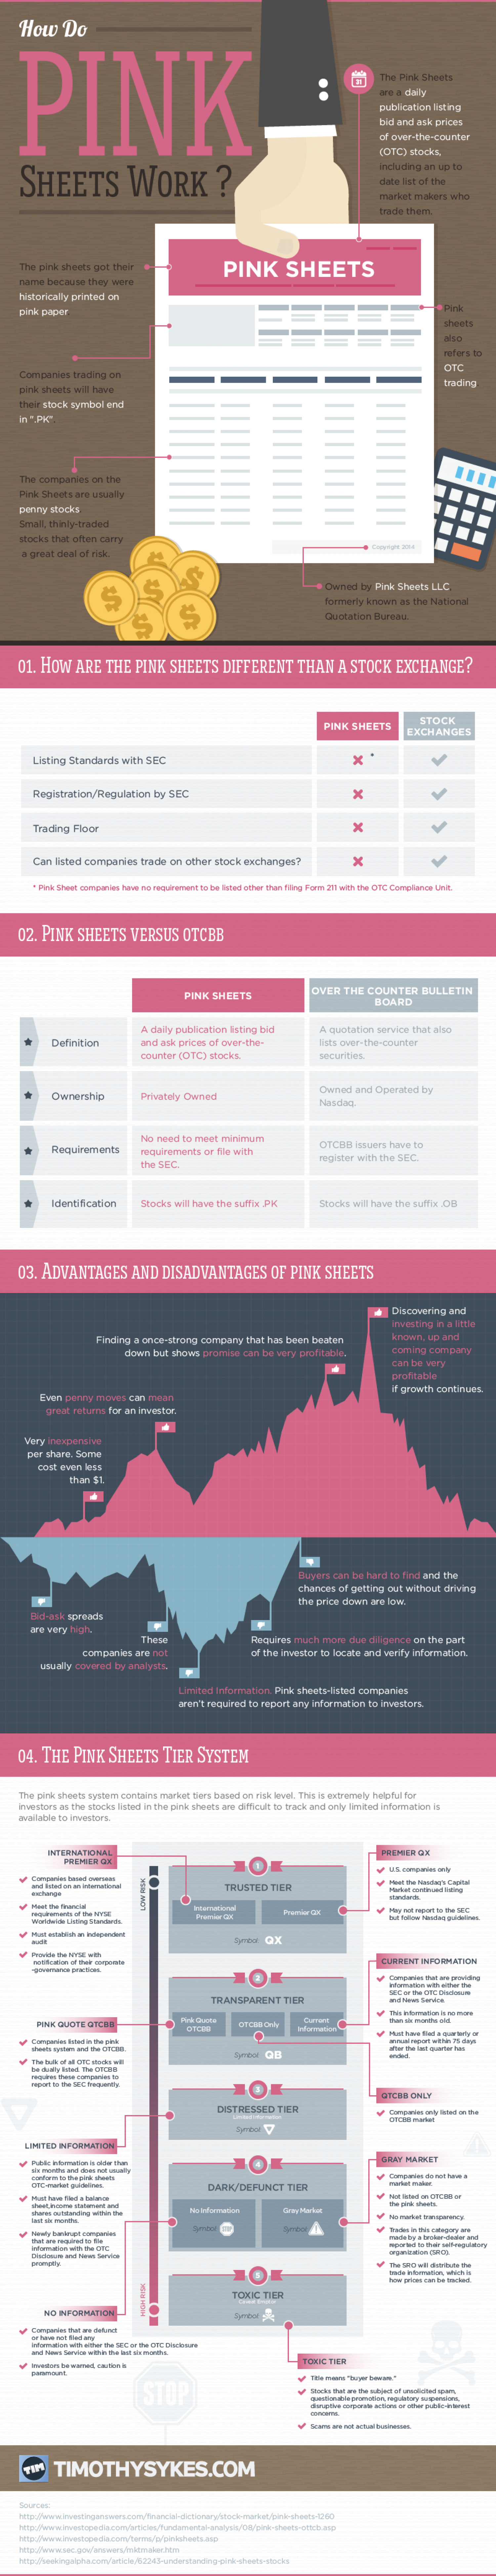 How Do Pink Sheets Stocks Work? Infographic